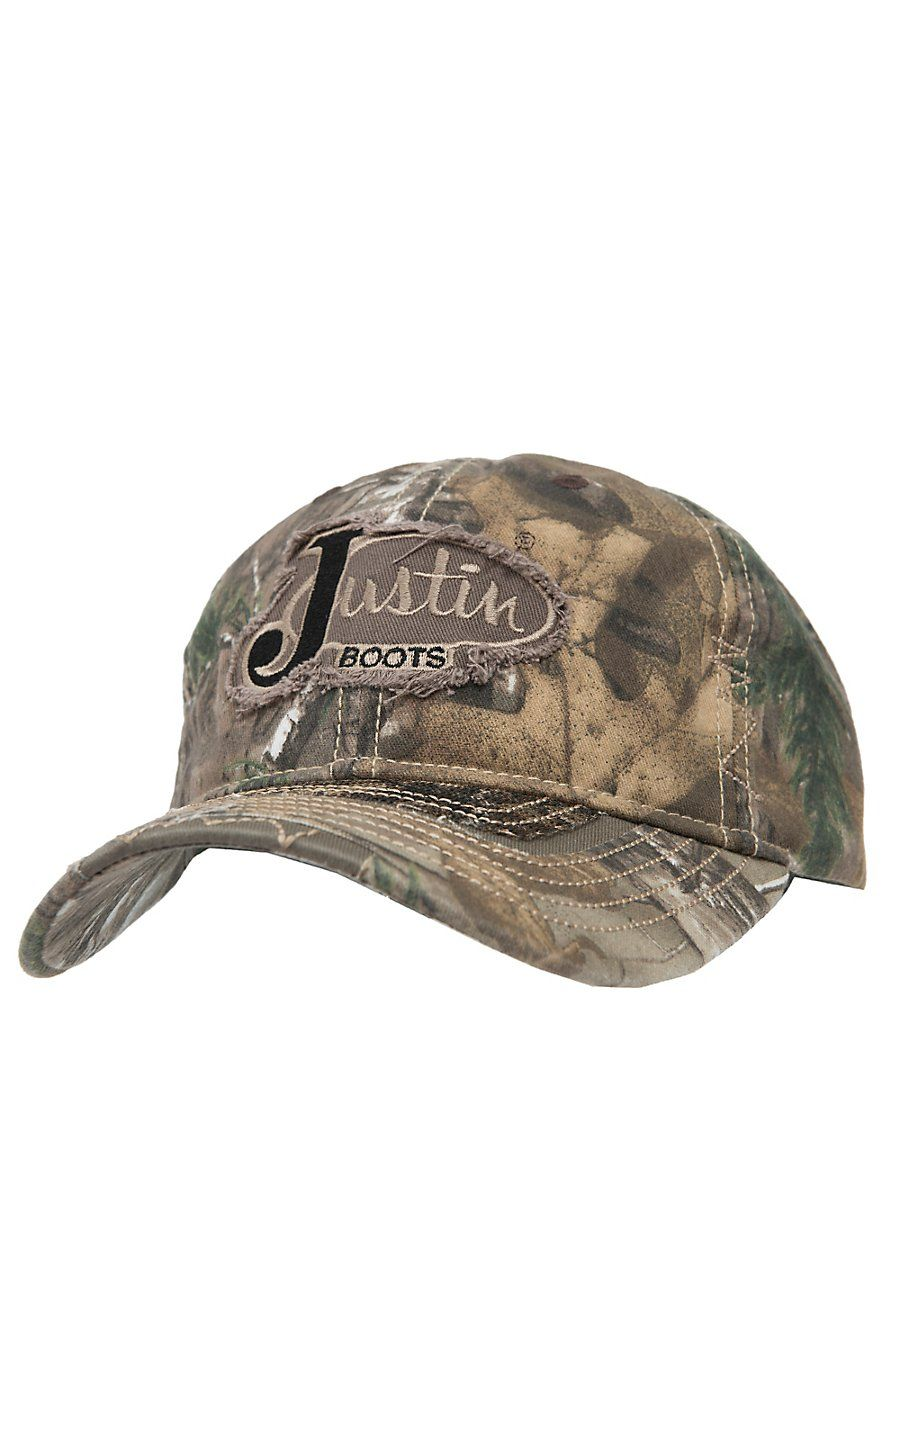 Justin Boots® Realtree Camo with Frayed Logo   Mesh Back Cap 0273416b9ded